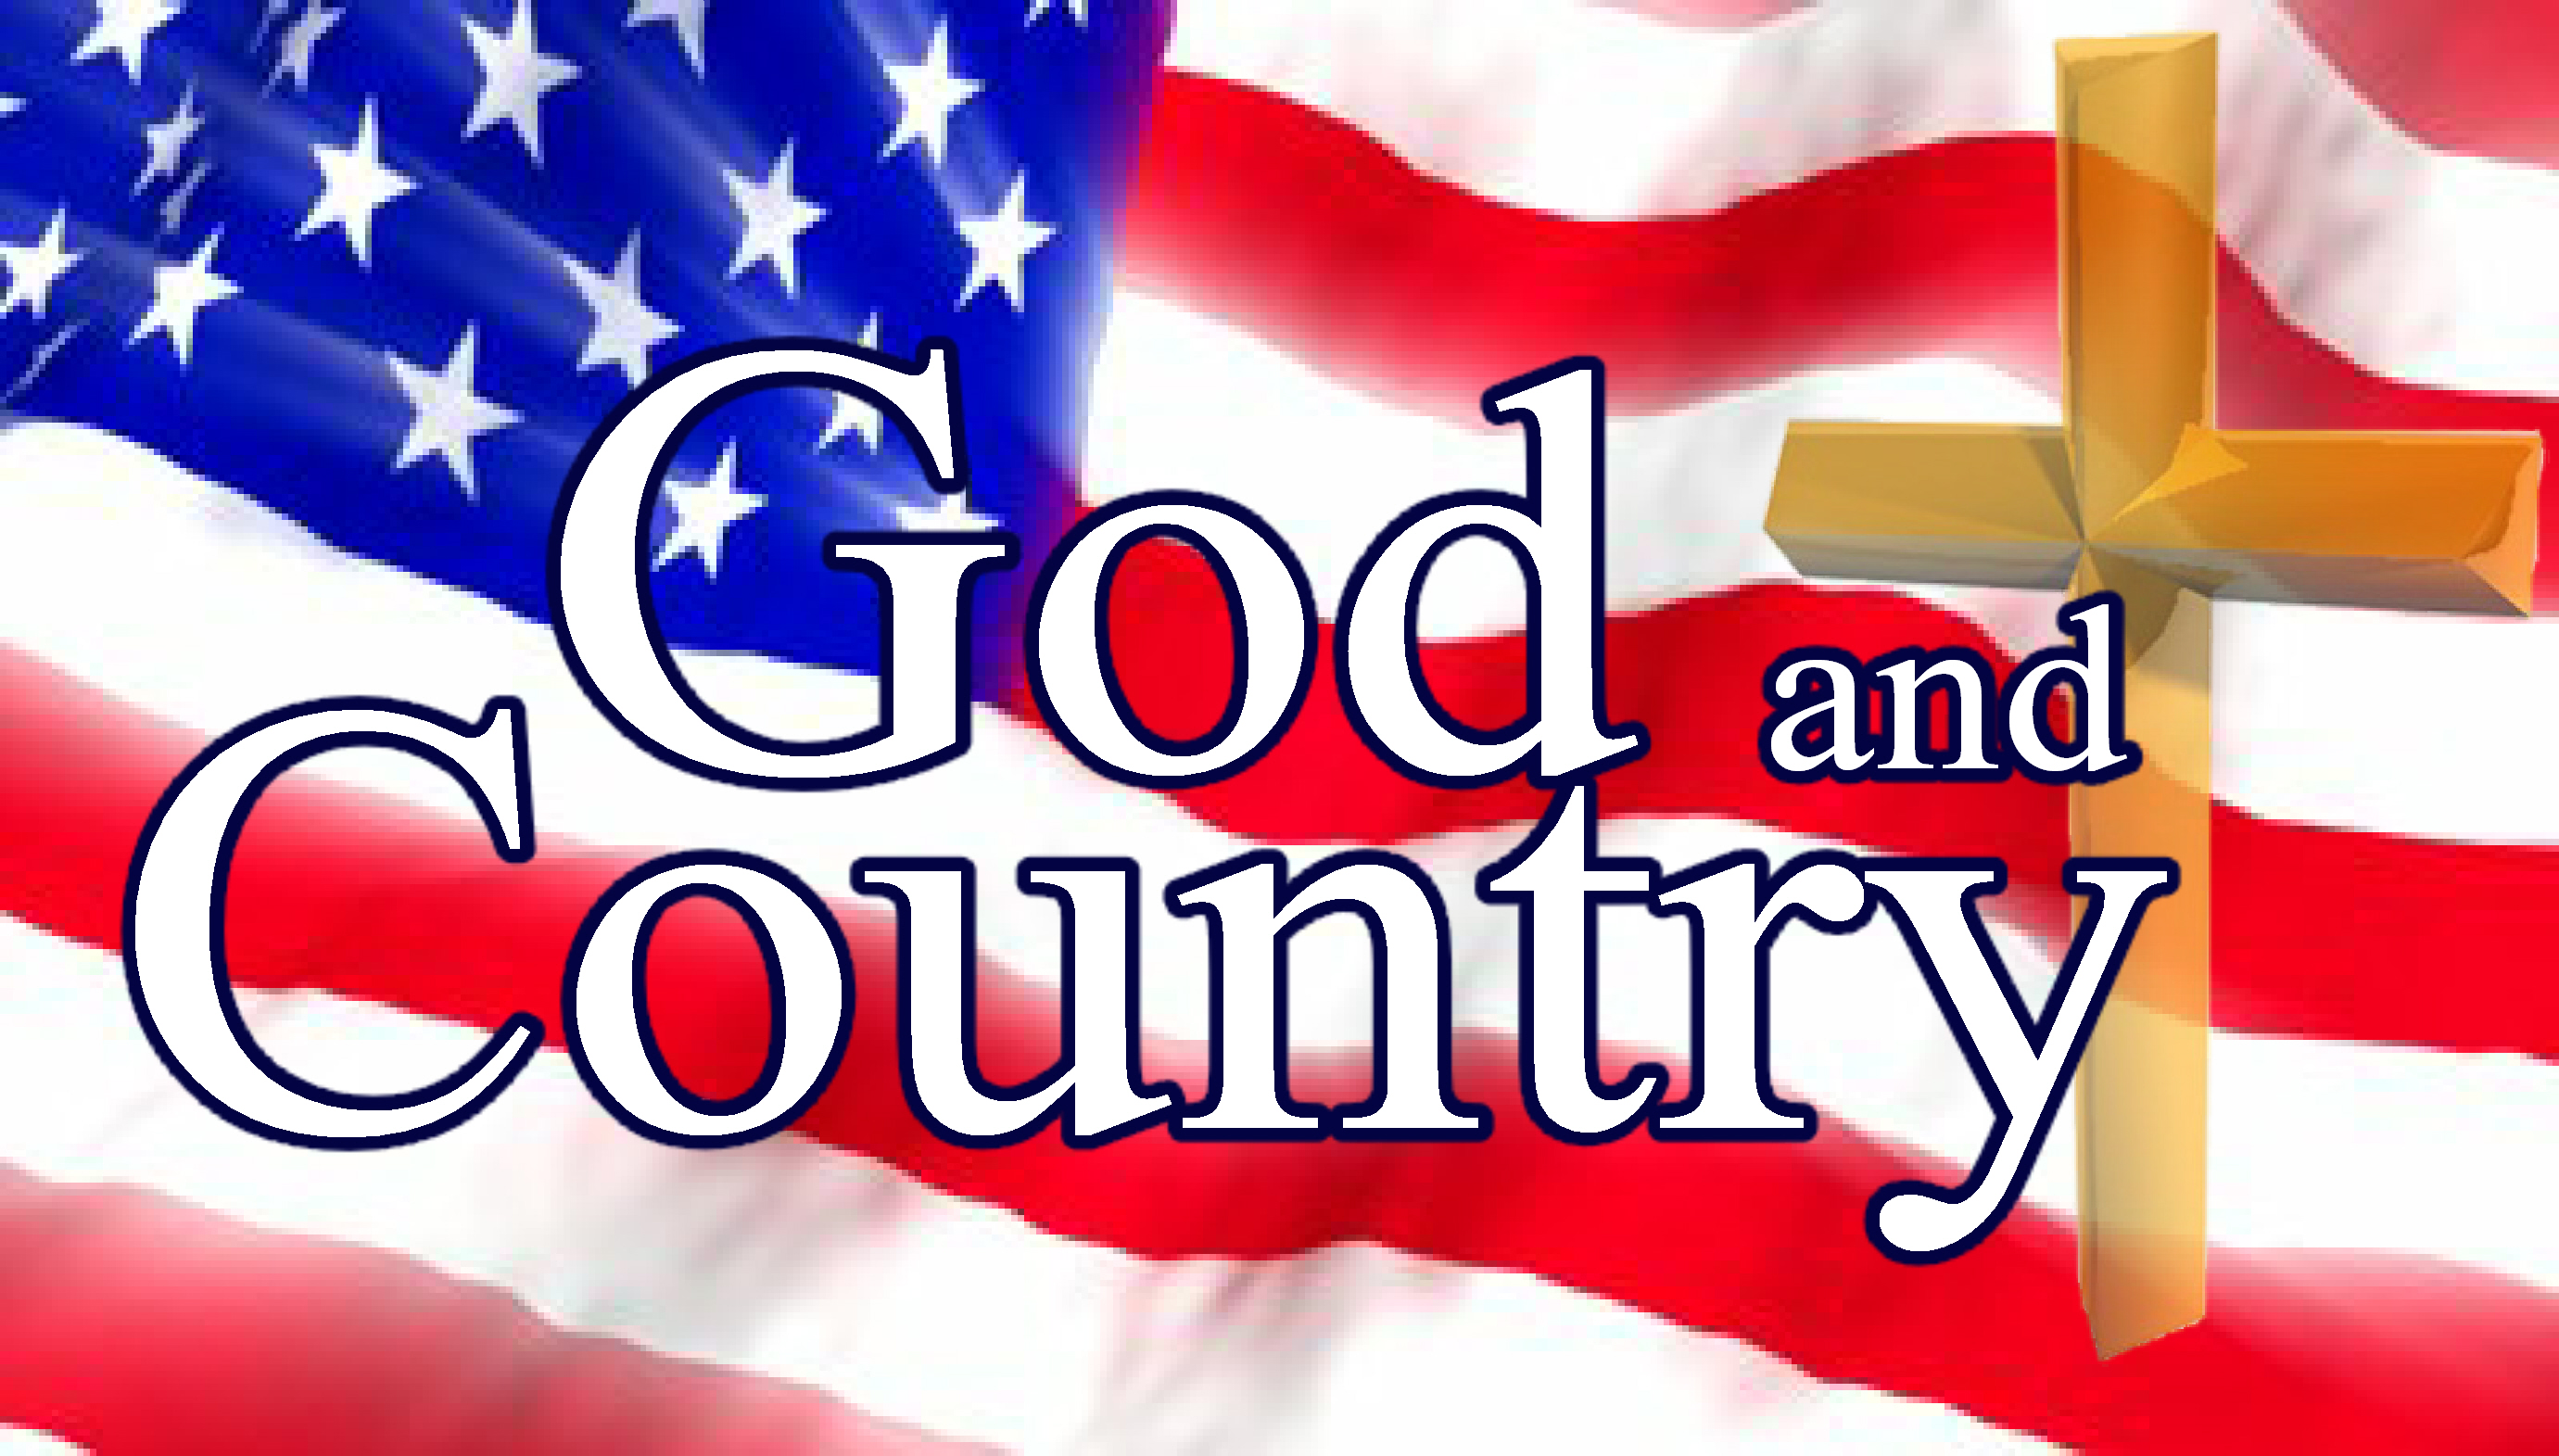 god flag and country essay God flag and country school essays papers: bible homework help @whimbrei in her essay silly novels by lady novelists if that direct link didn't work- yes.